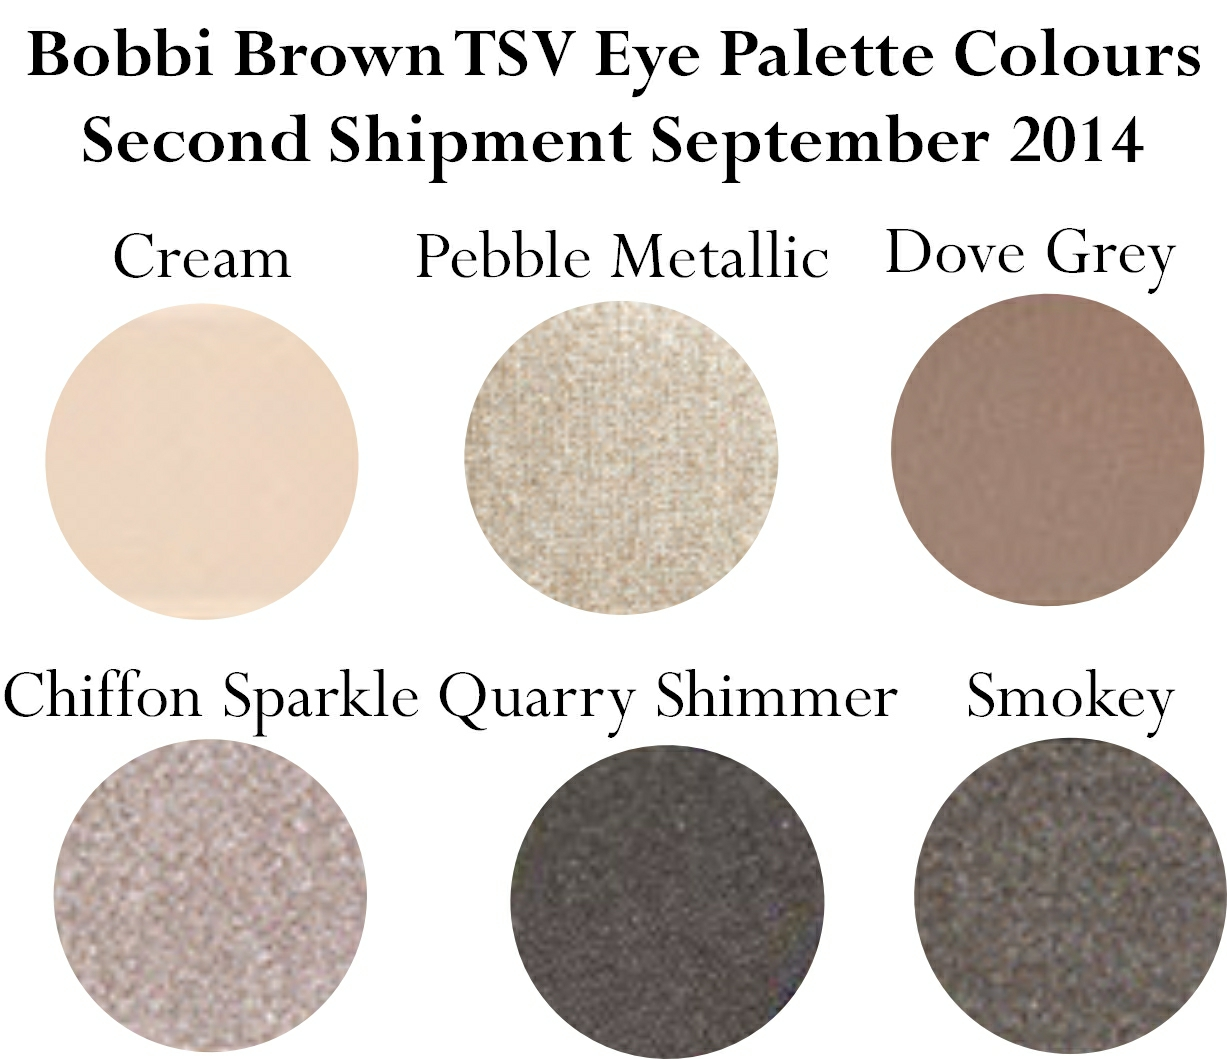 Bobbi Brown Back to Basics September Eye Palette Colours